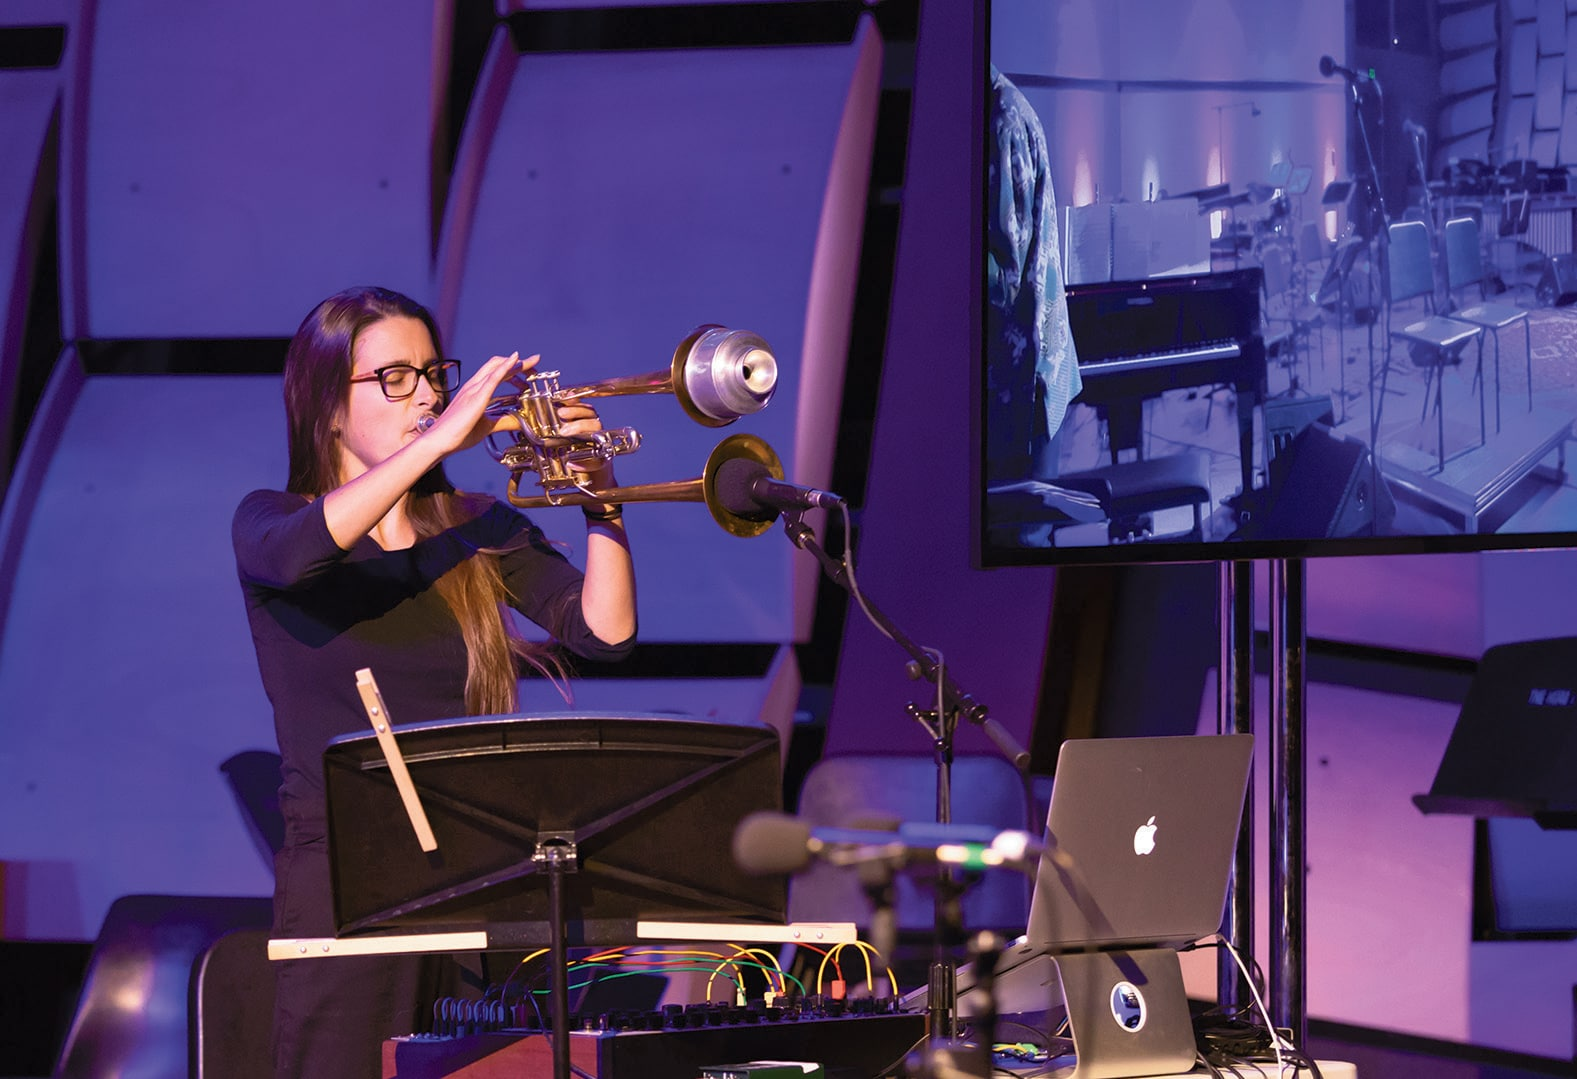 Sarah Belle Reid (MFA 15 and DMA Candidate) performs at David Rosenboom's Portrait Concert, Propositional Music.